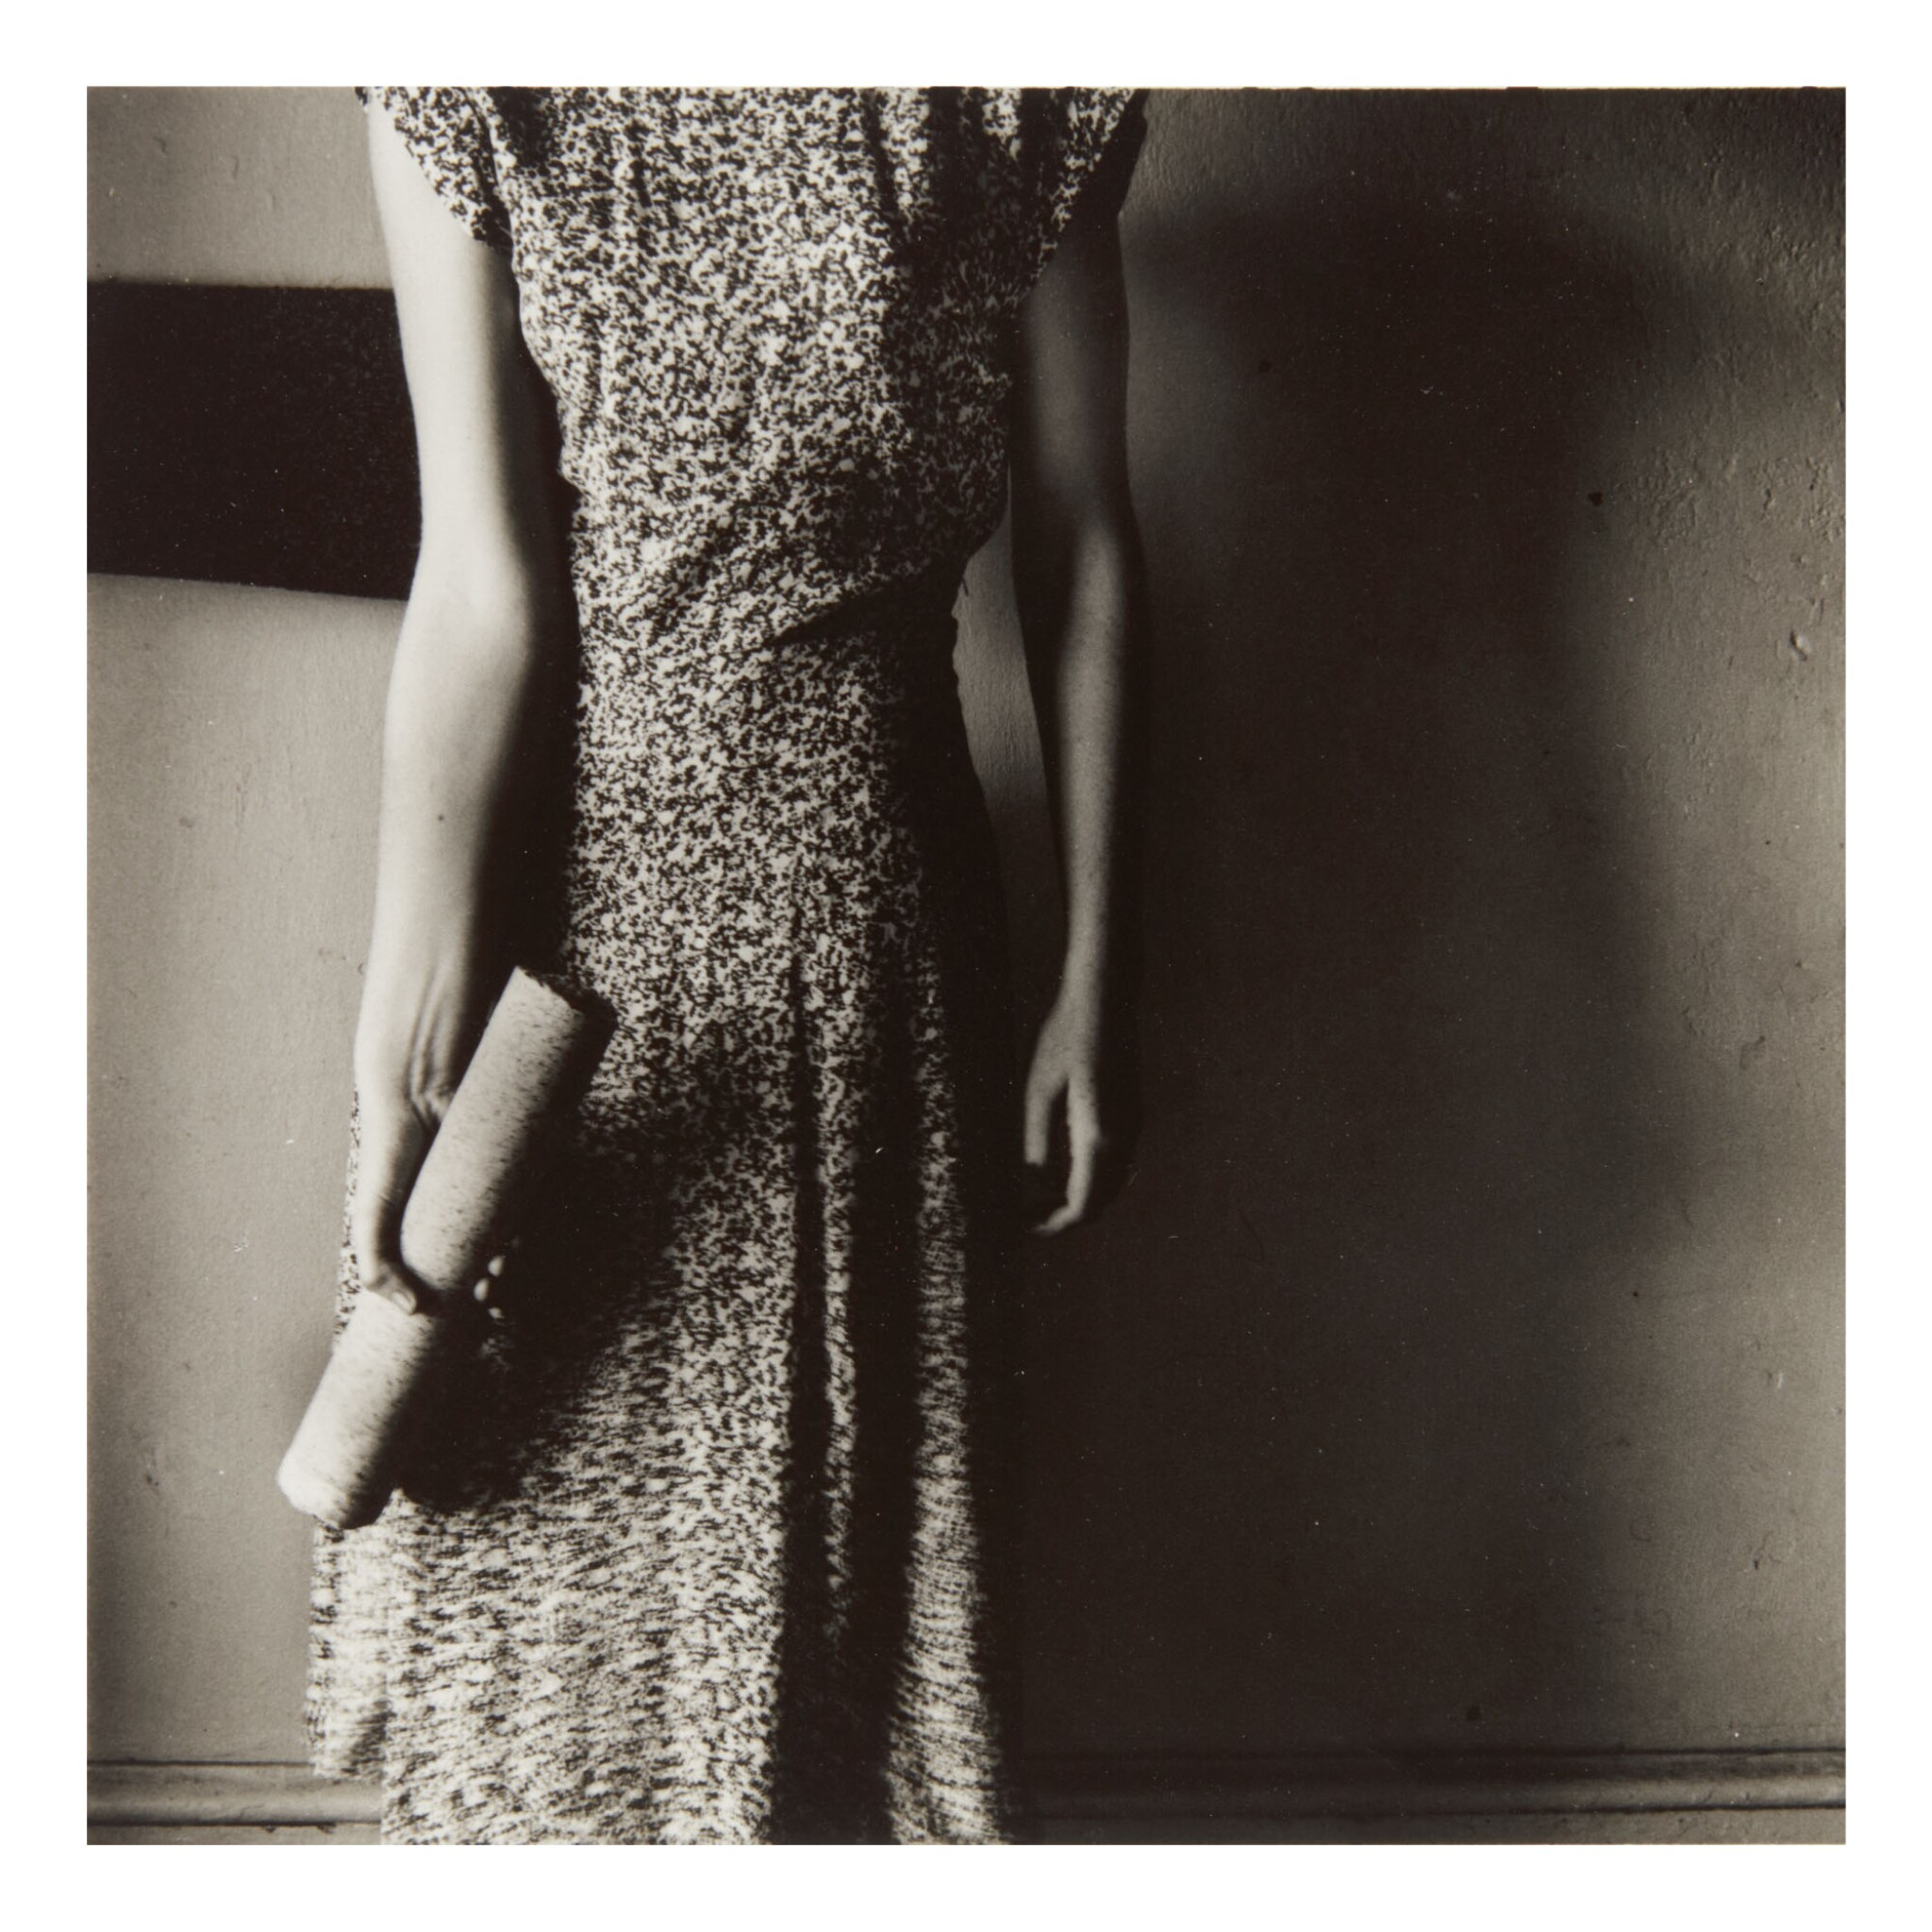 FRANCESCA WOODMAN | 'FIGURE WITH MARBLE COLUMN' (MACDOWELL COLONY, PETERBOROUGH, NEW HAMPSHIRE)